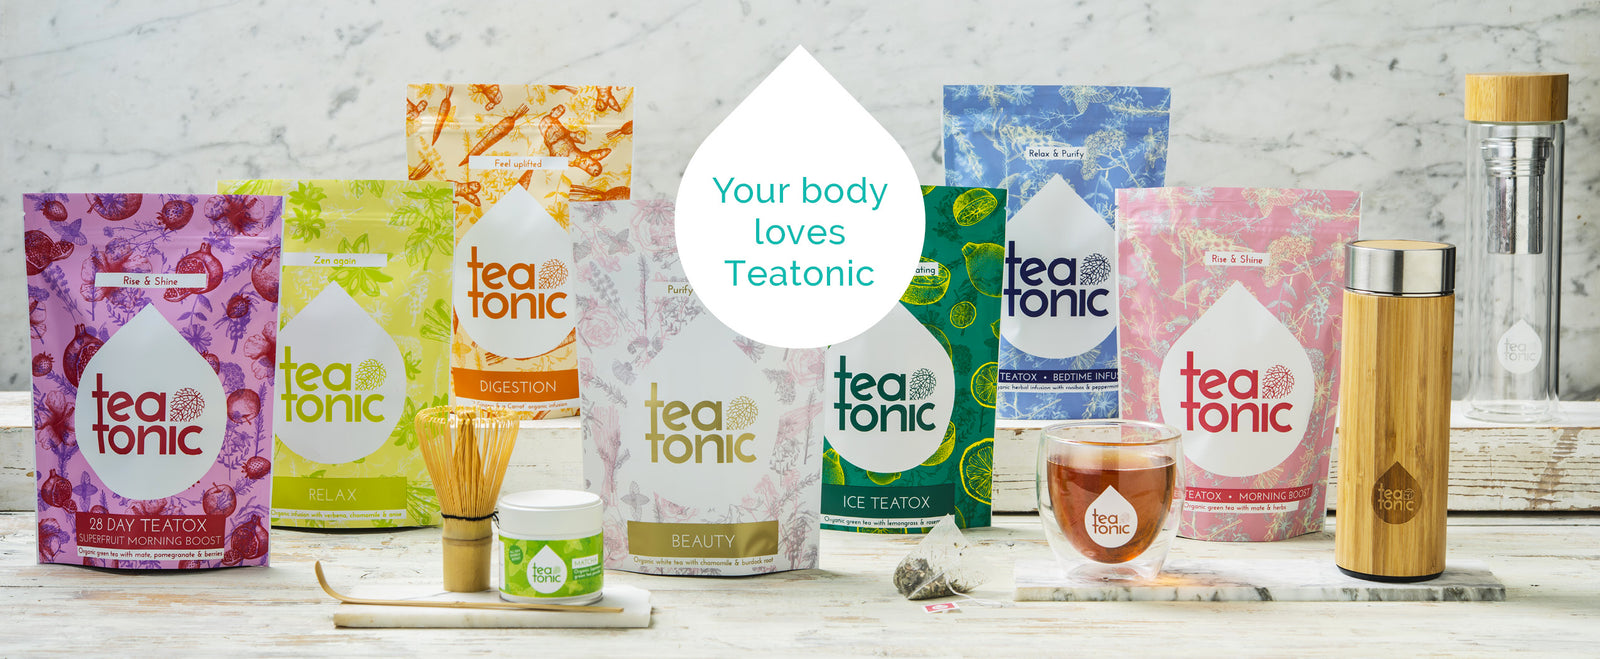 Teatonic - Teatox - Weight loss - Detox tea range